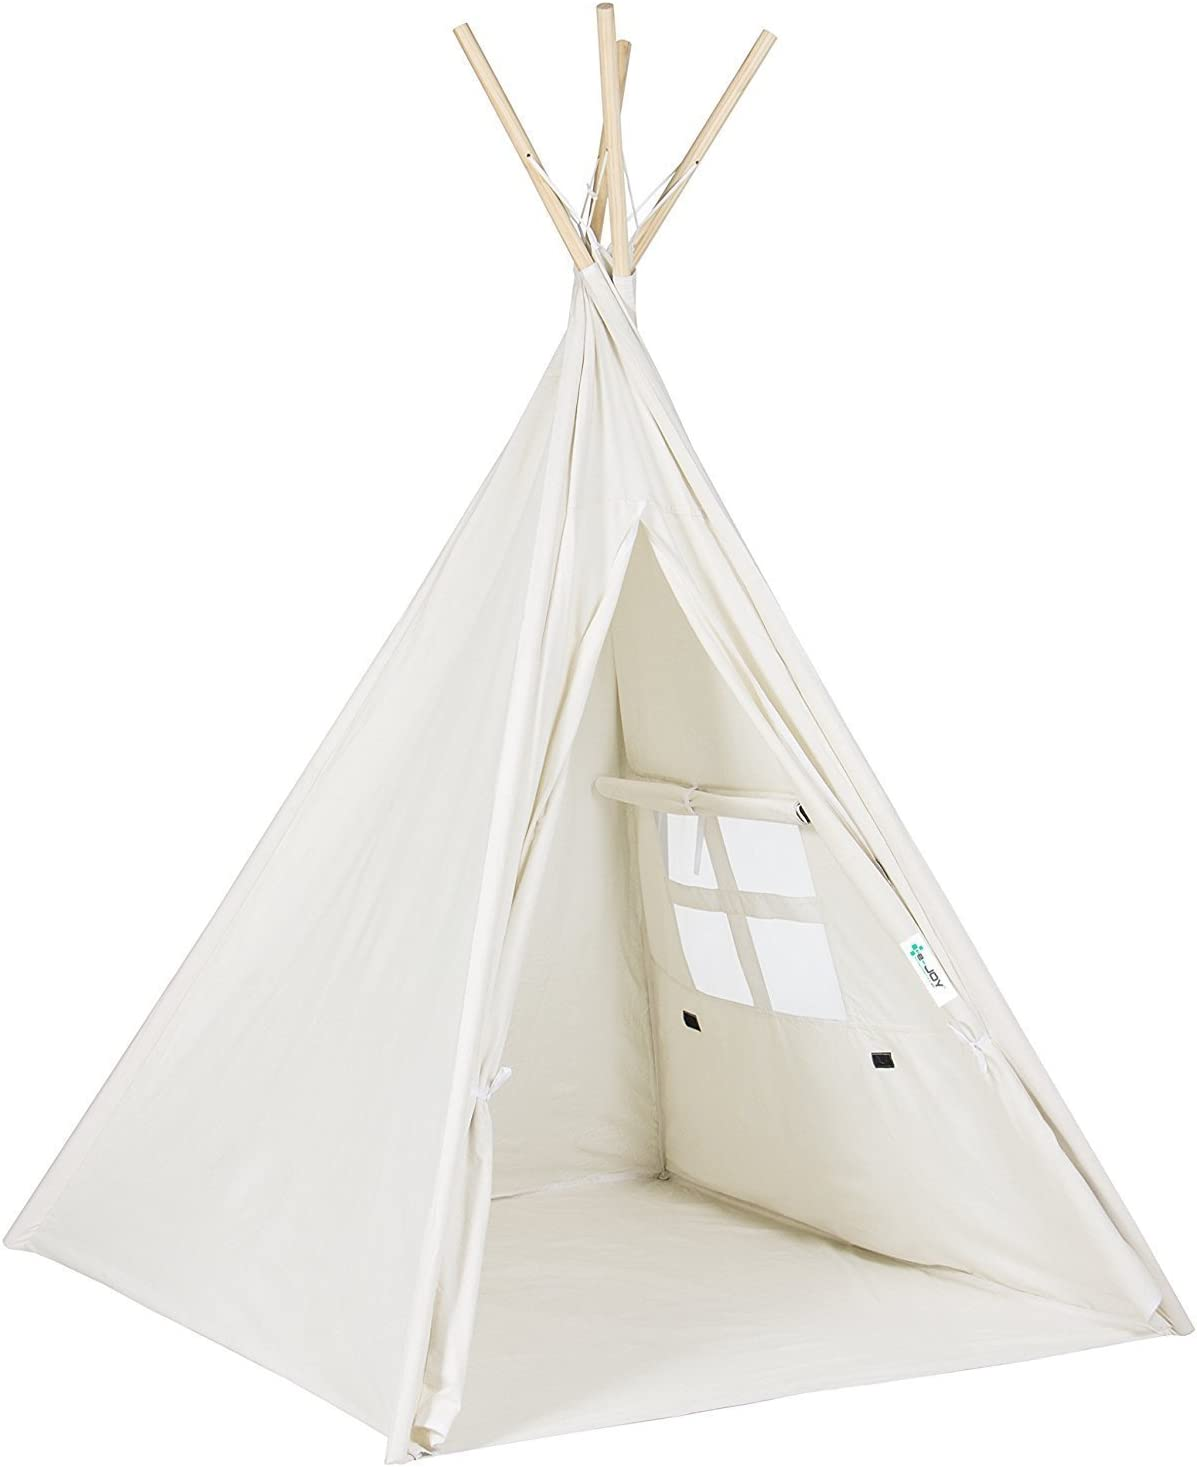 Top 15 Best Kids Teepee Tents (2020 Reviews & Buying Guide) 6